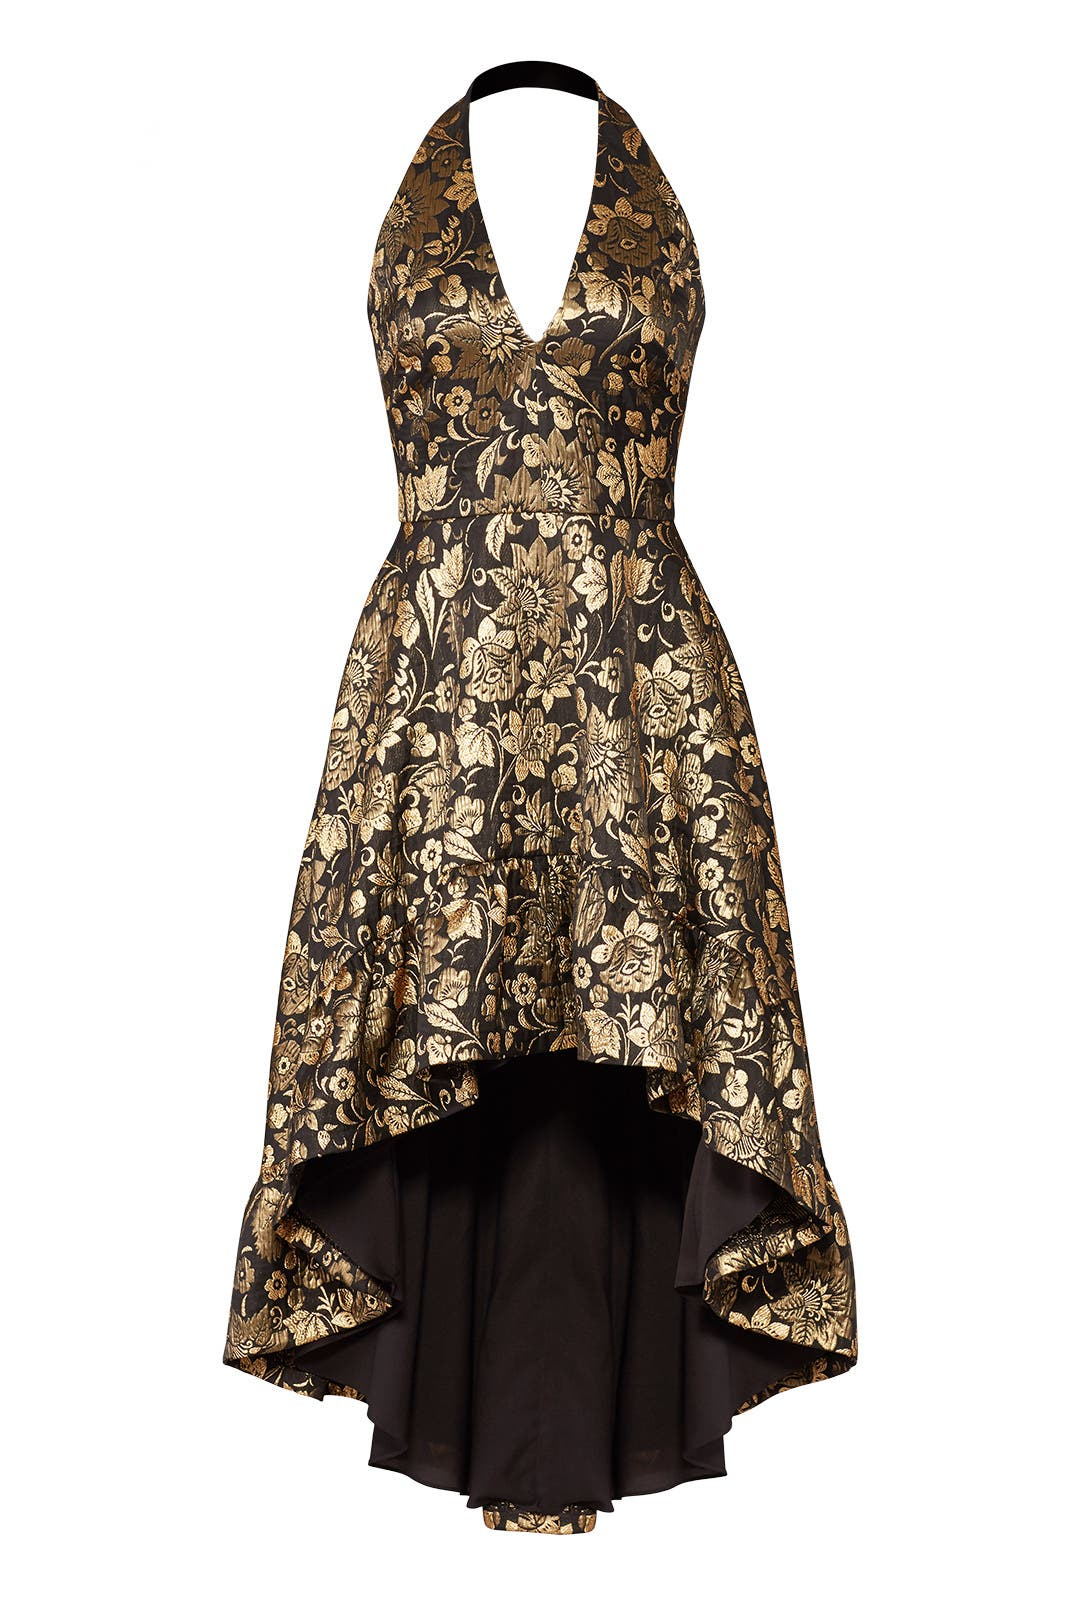 Black and Gold Dress by Nicole Miller for $55 - $75 | Rent the Runway